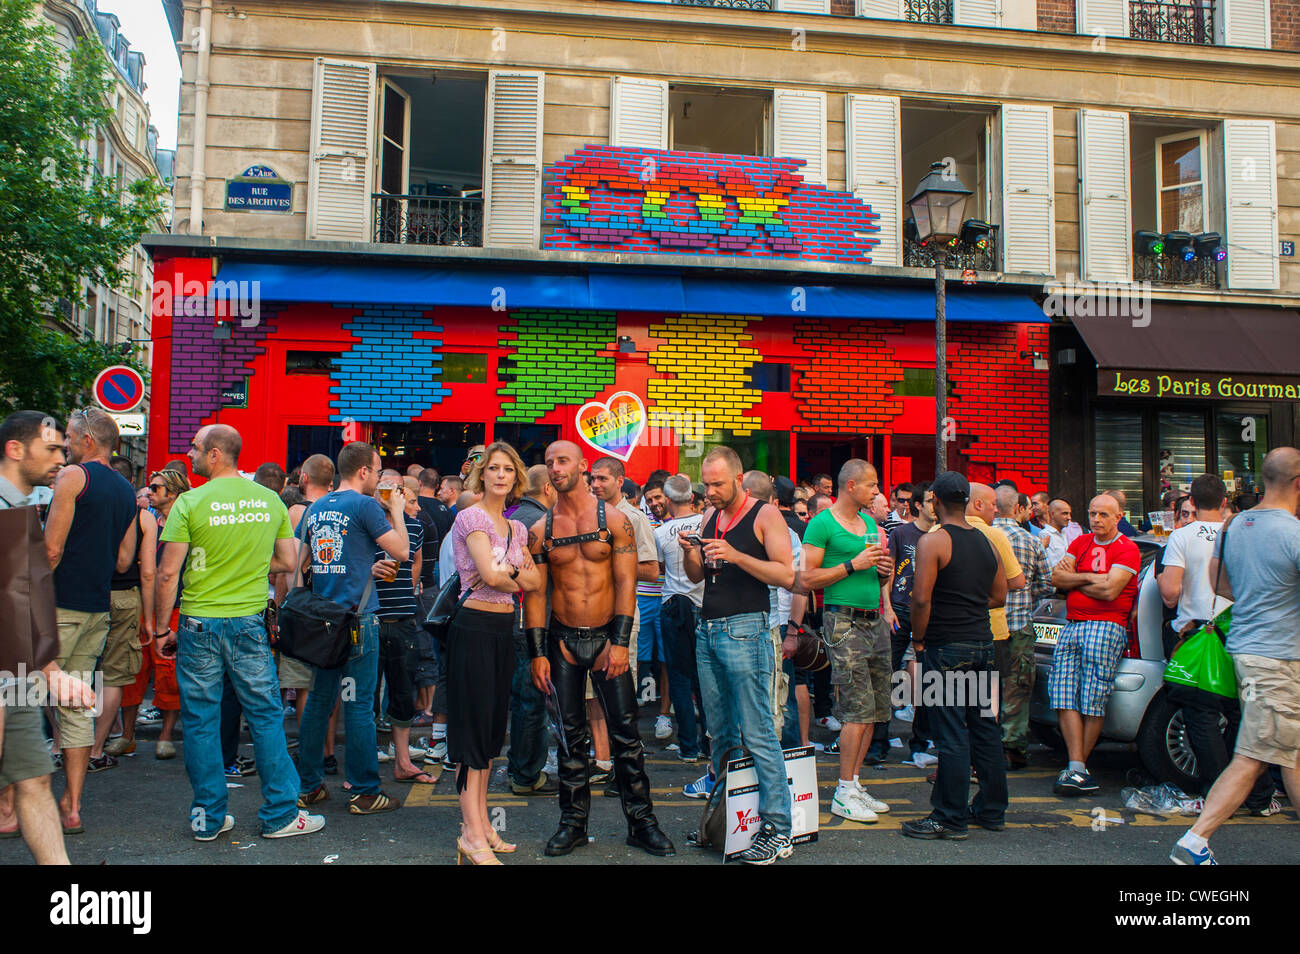 from Bobby gay bars in paris france